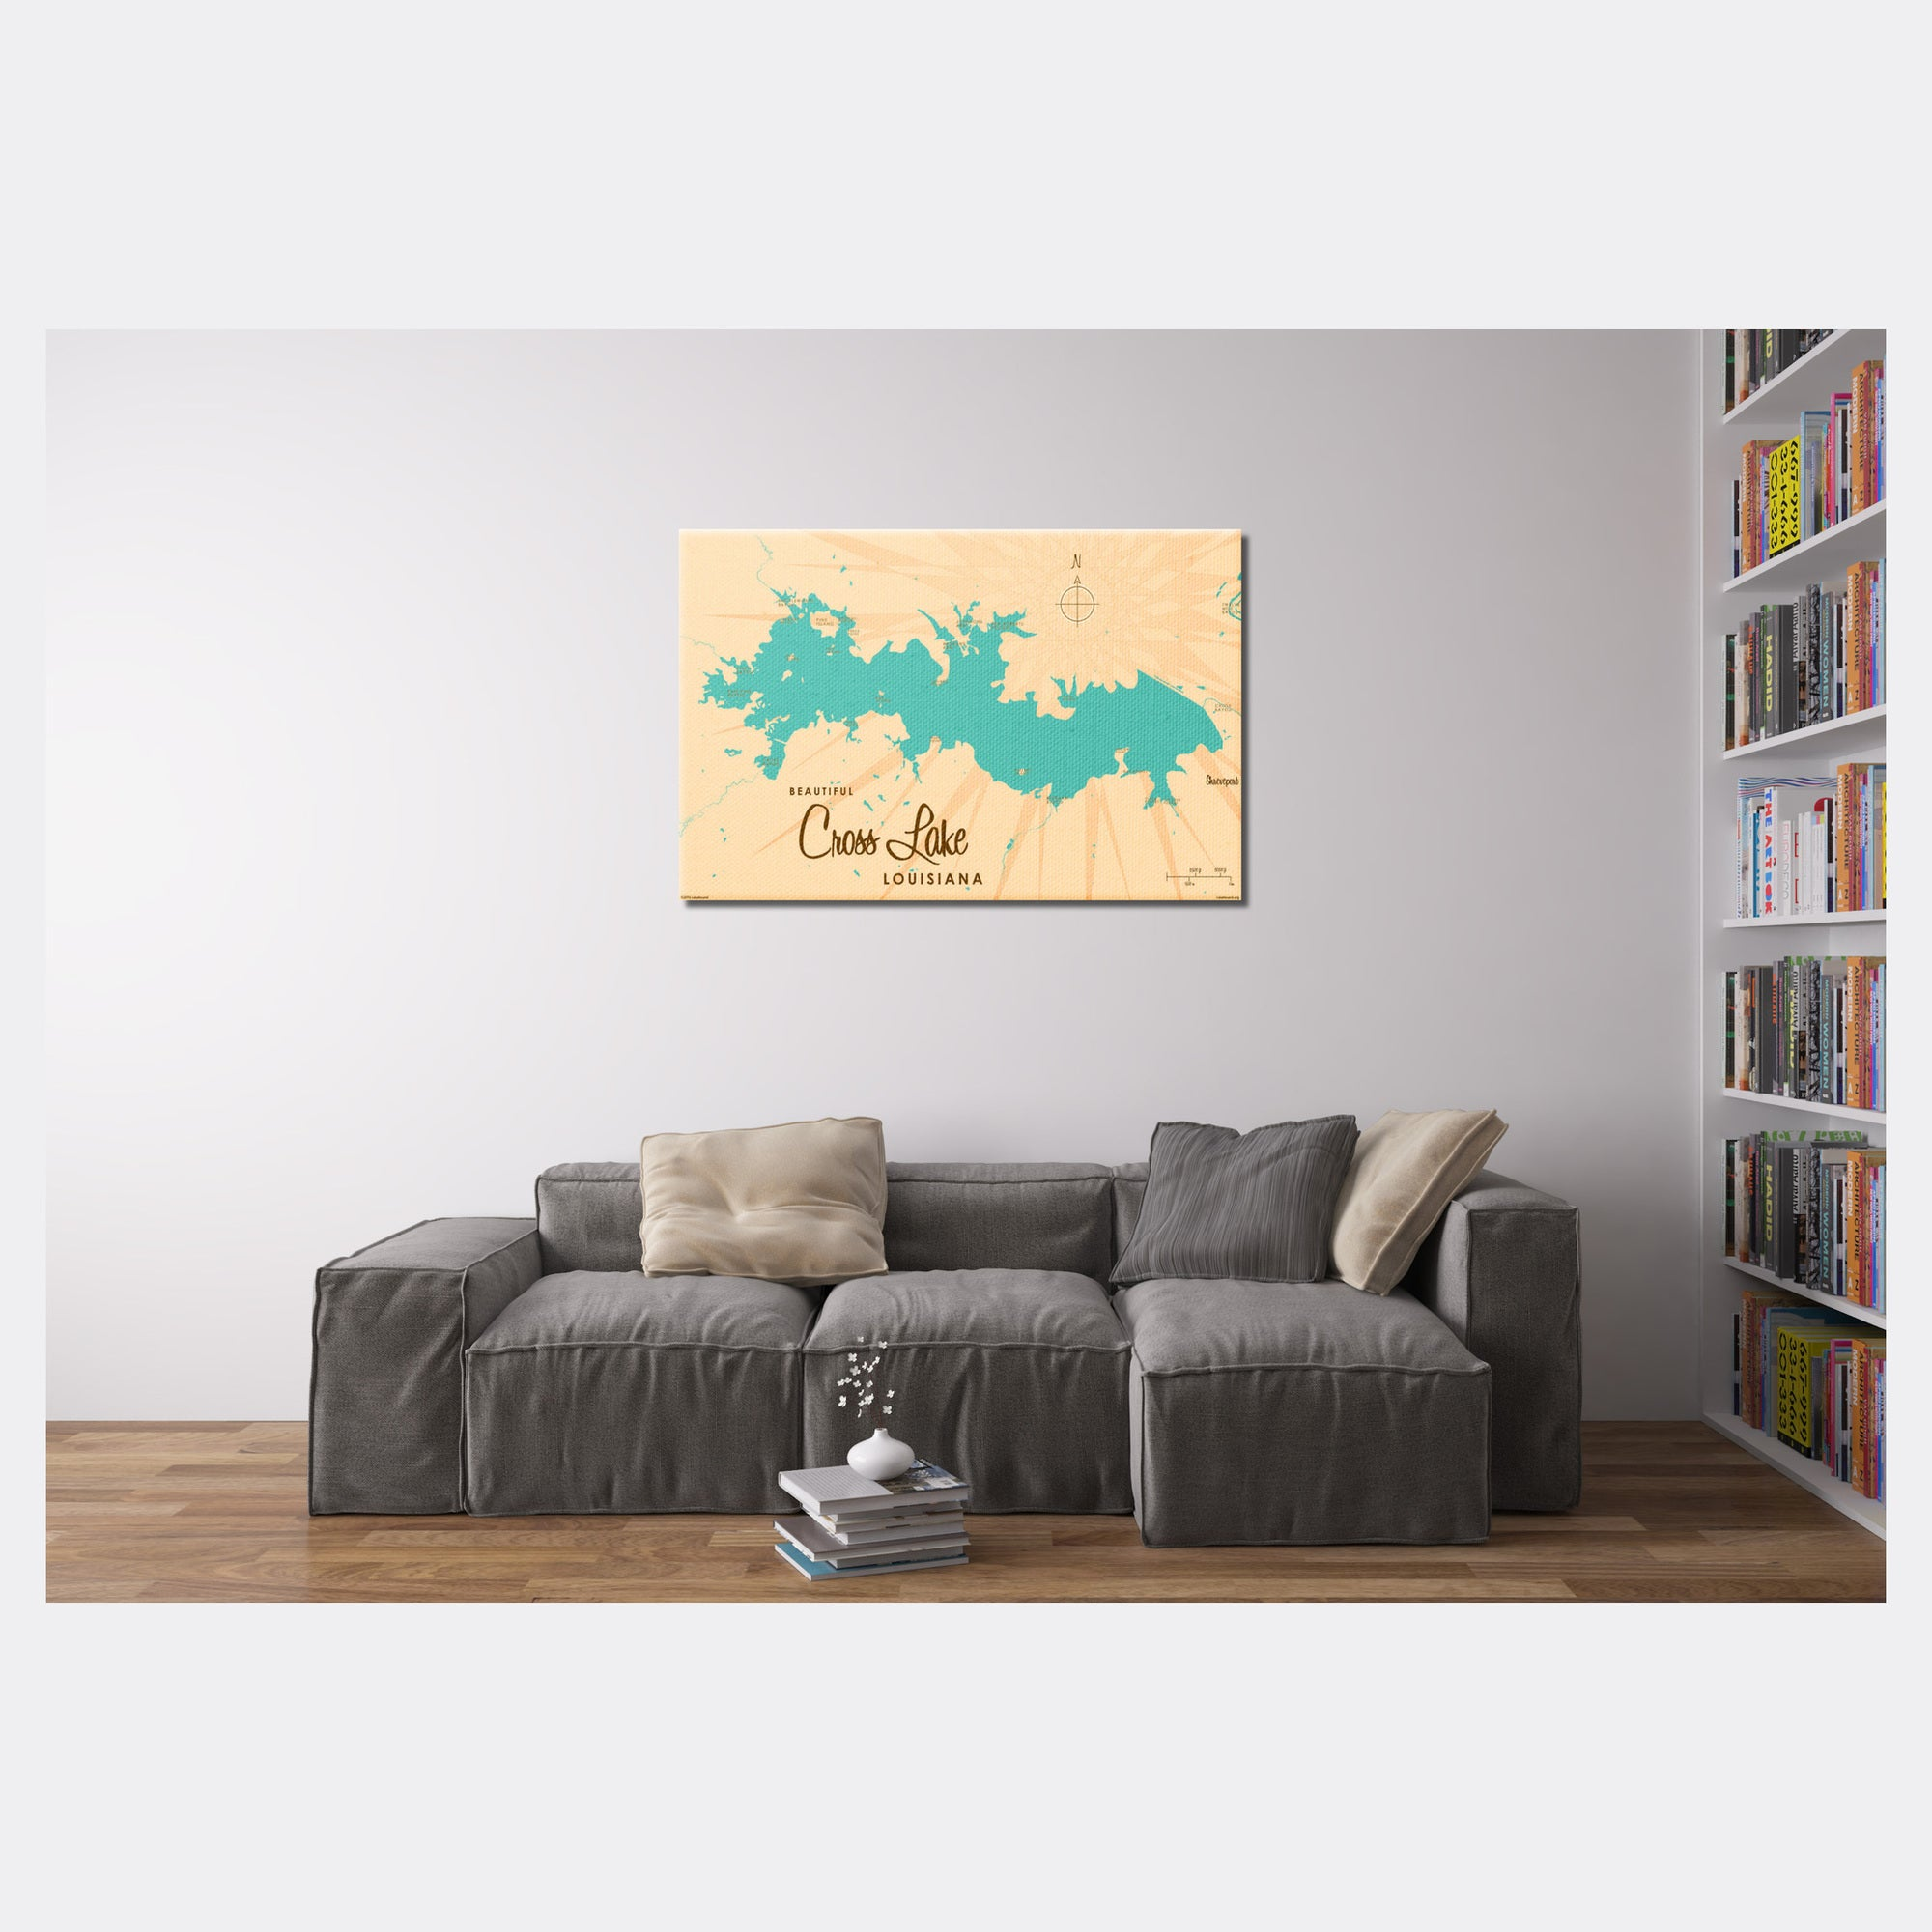 Cross Lake Louisiana, Canvas Print